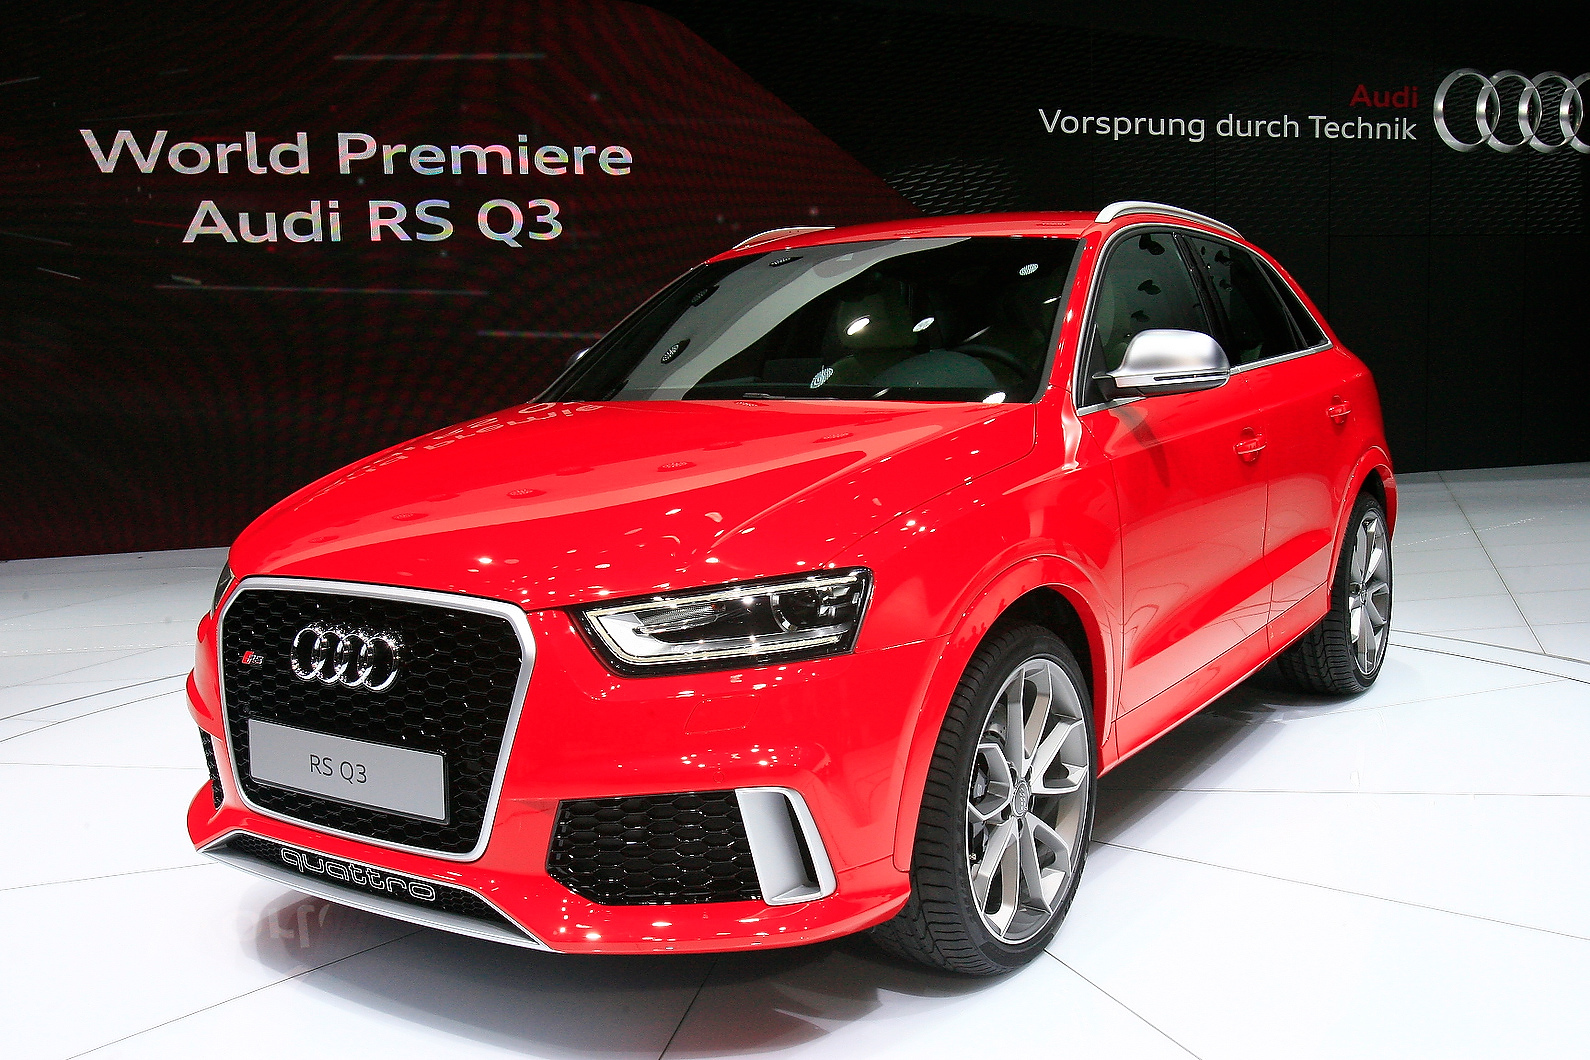 Audi RS Q3 uses 2.5-litre five-cylinder engine from RS3. Output is 306bhp